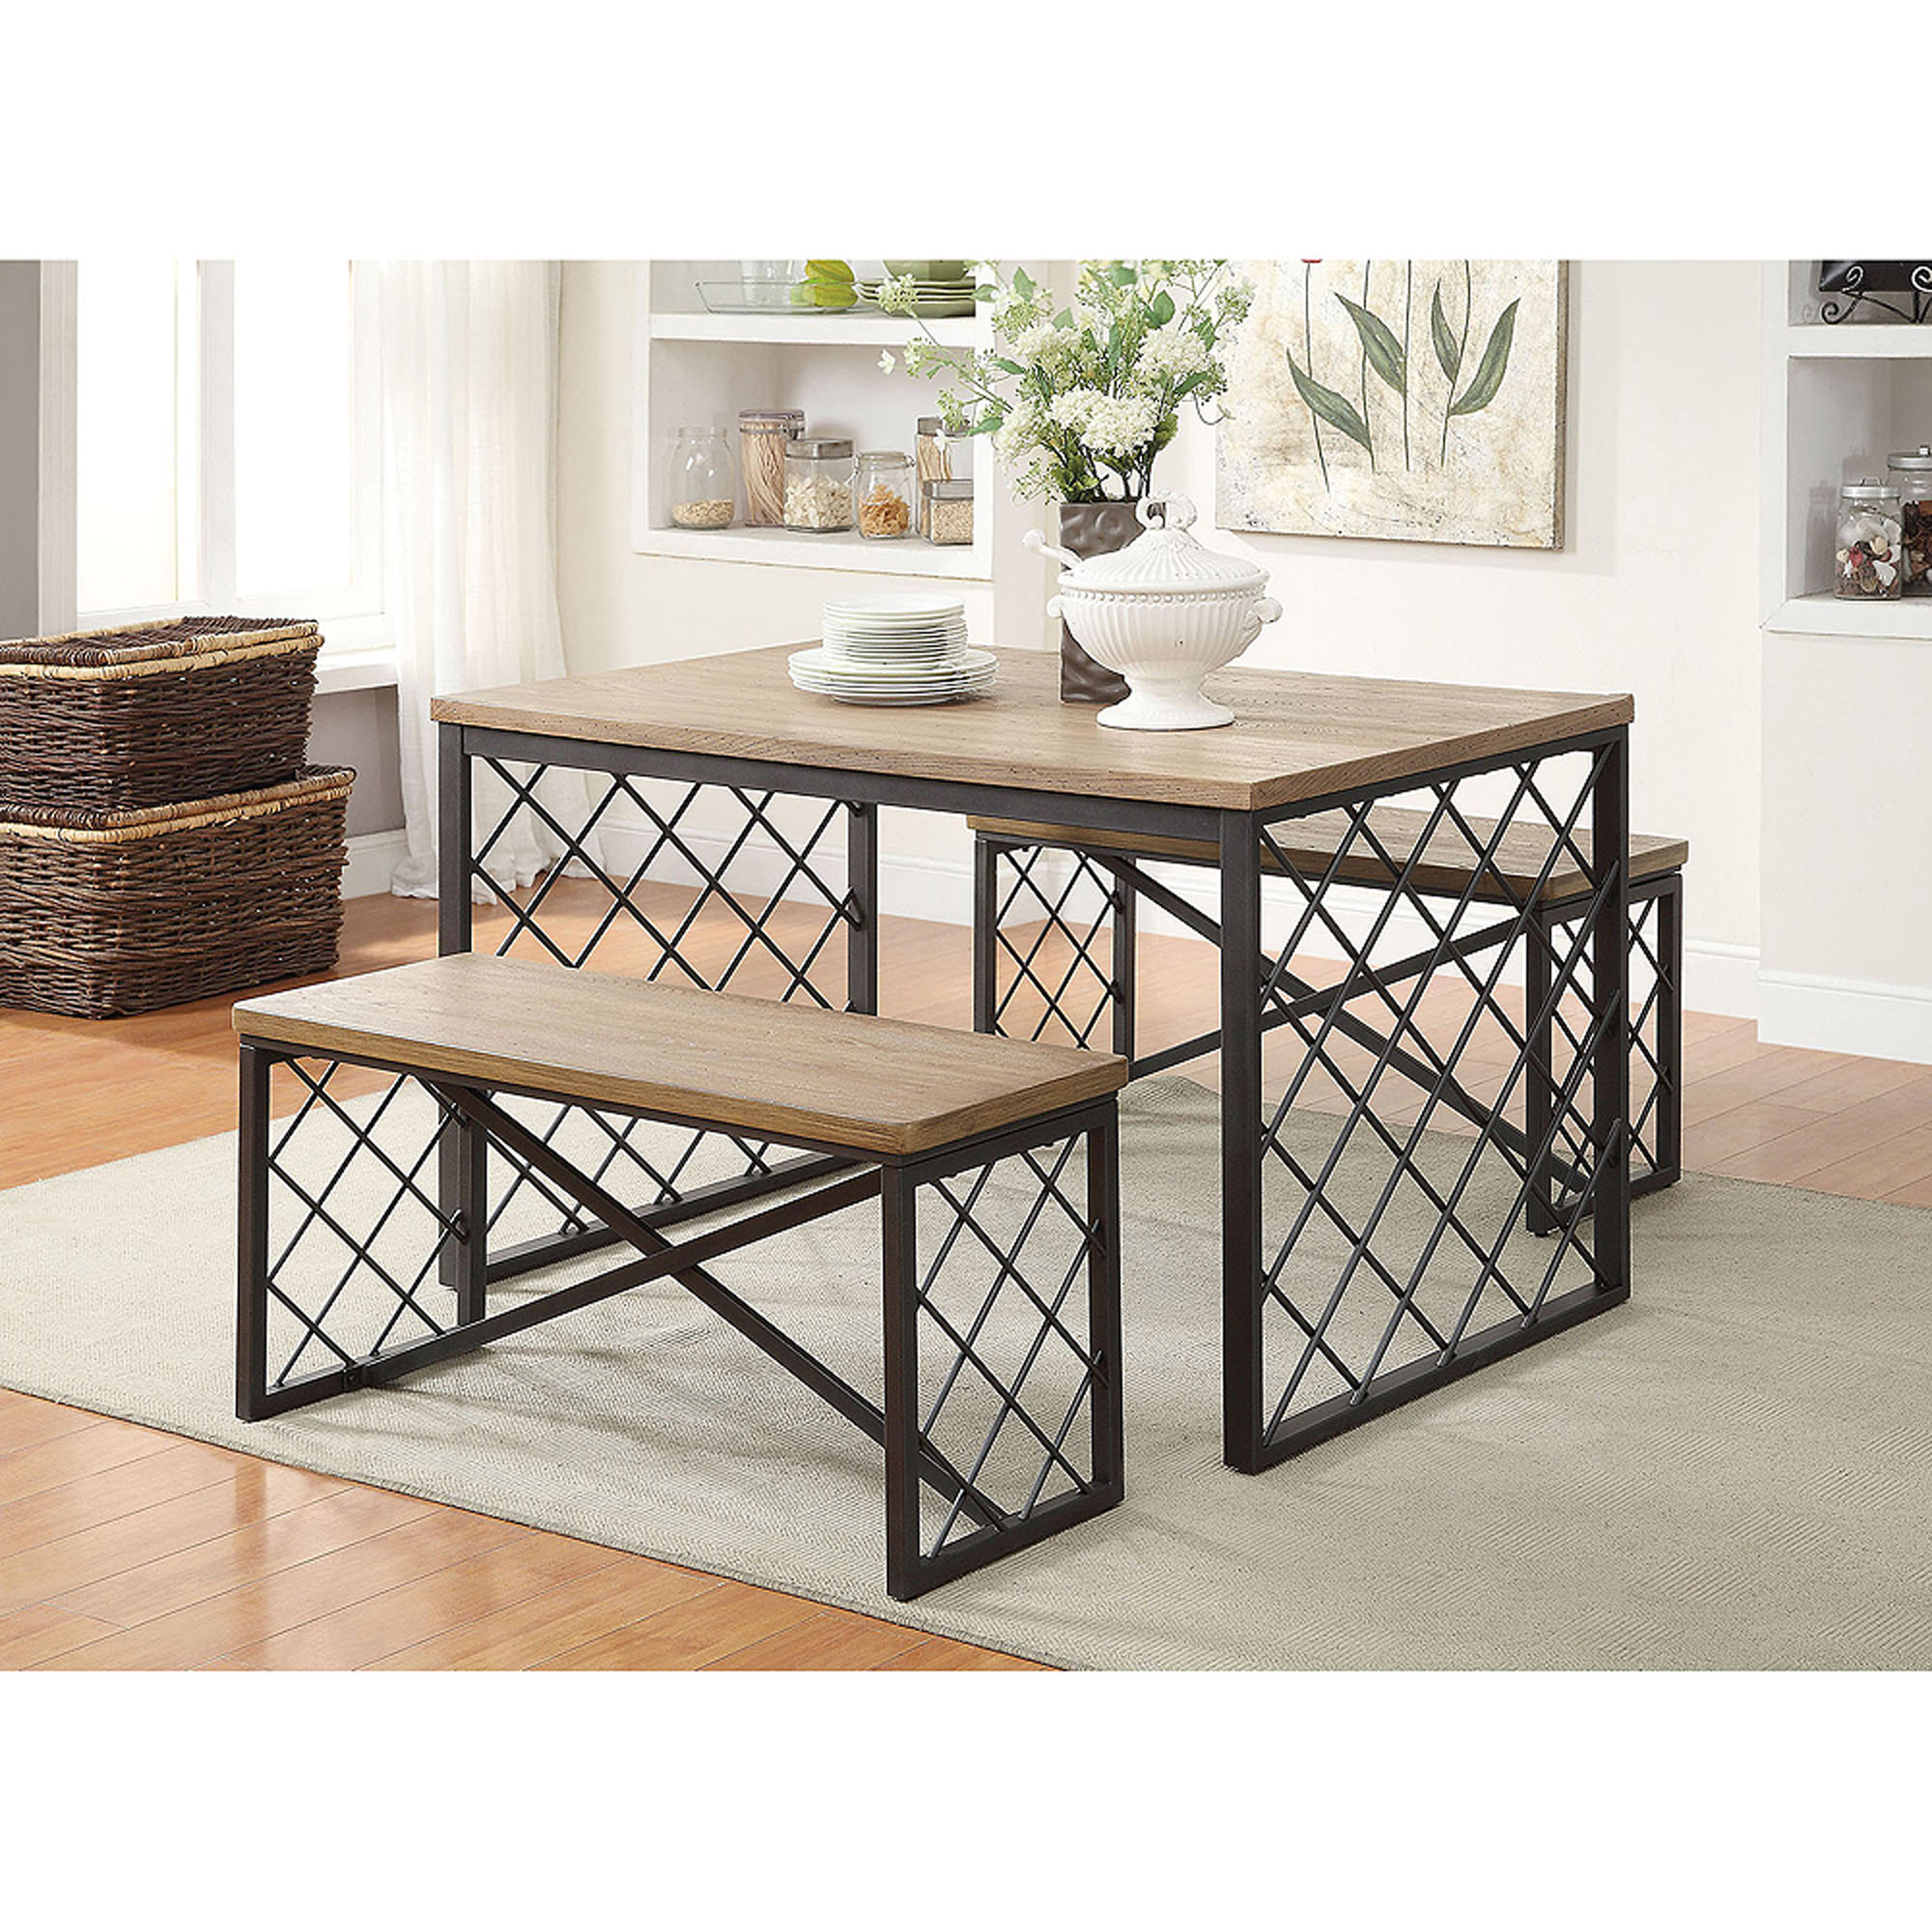 Catalina 3 Piece Dining Set, Light Oak And Grey   Walmart.com